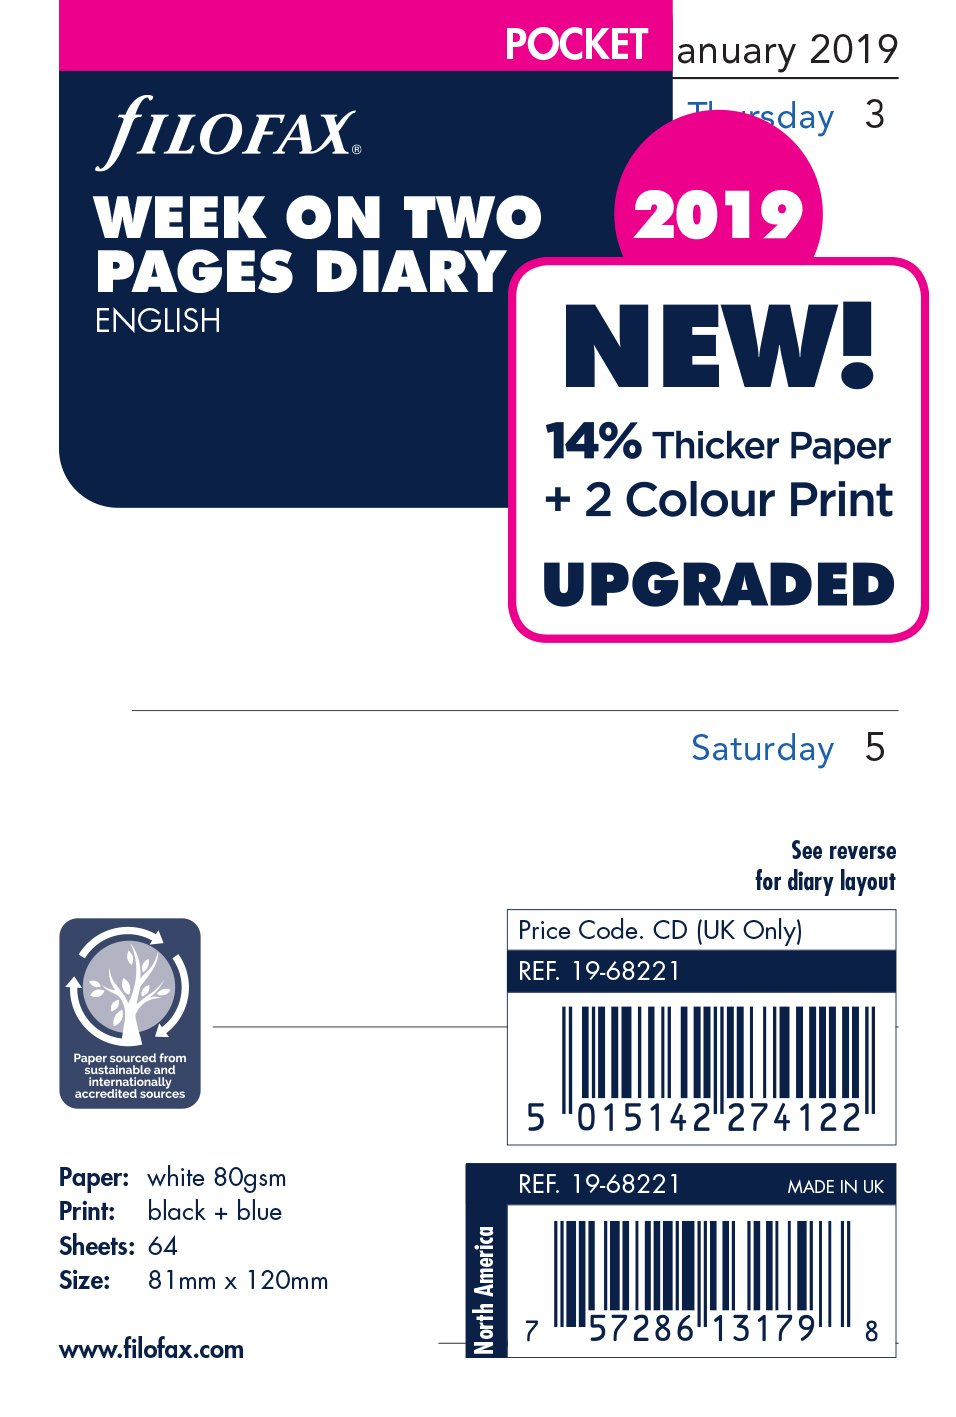 Filofax 19-68221 Pocket Week On Two Pages English 2019 Diary